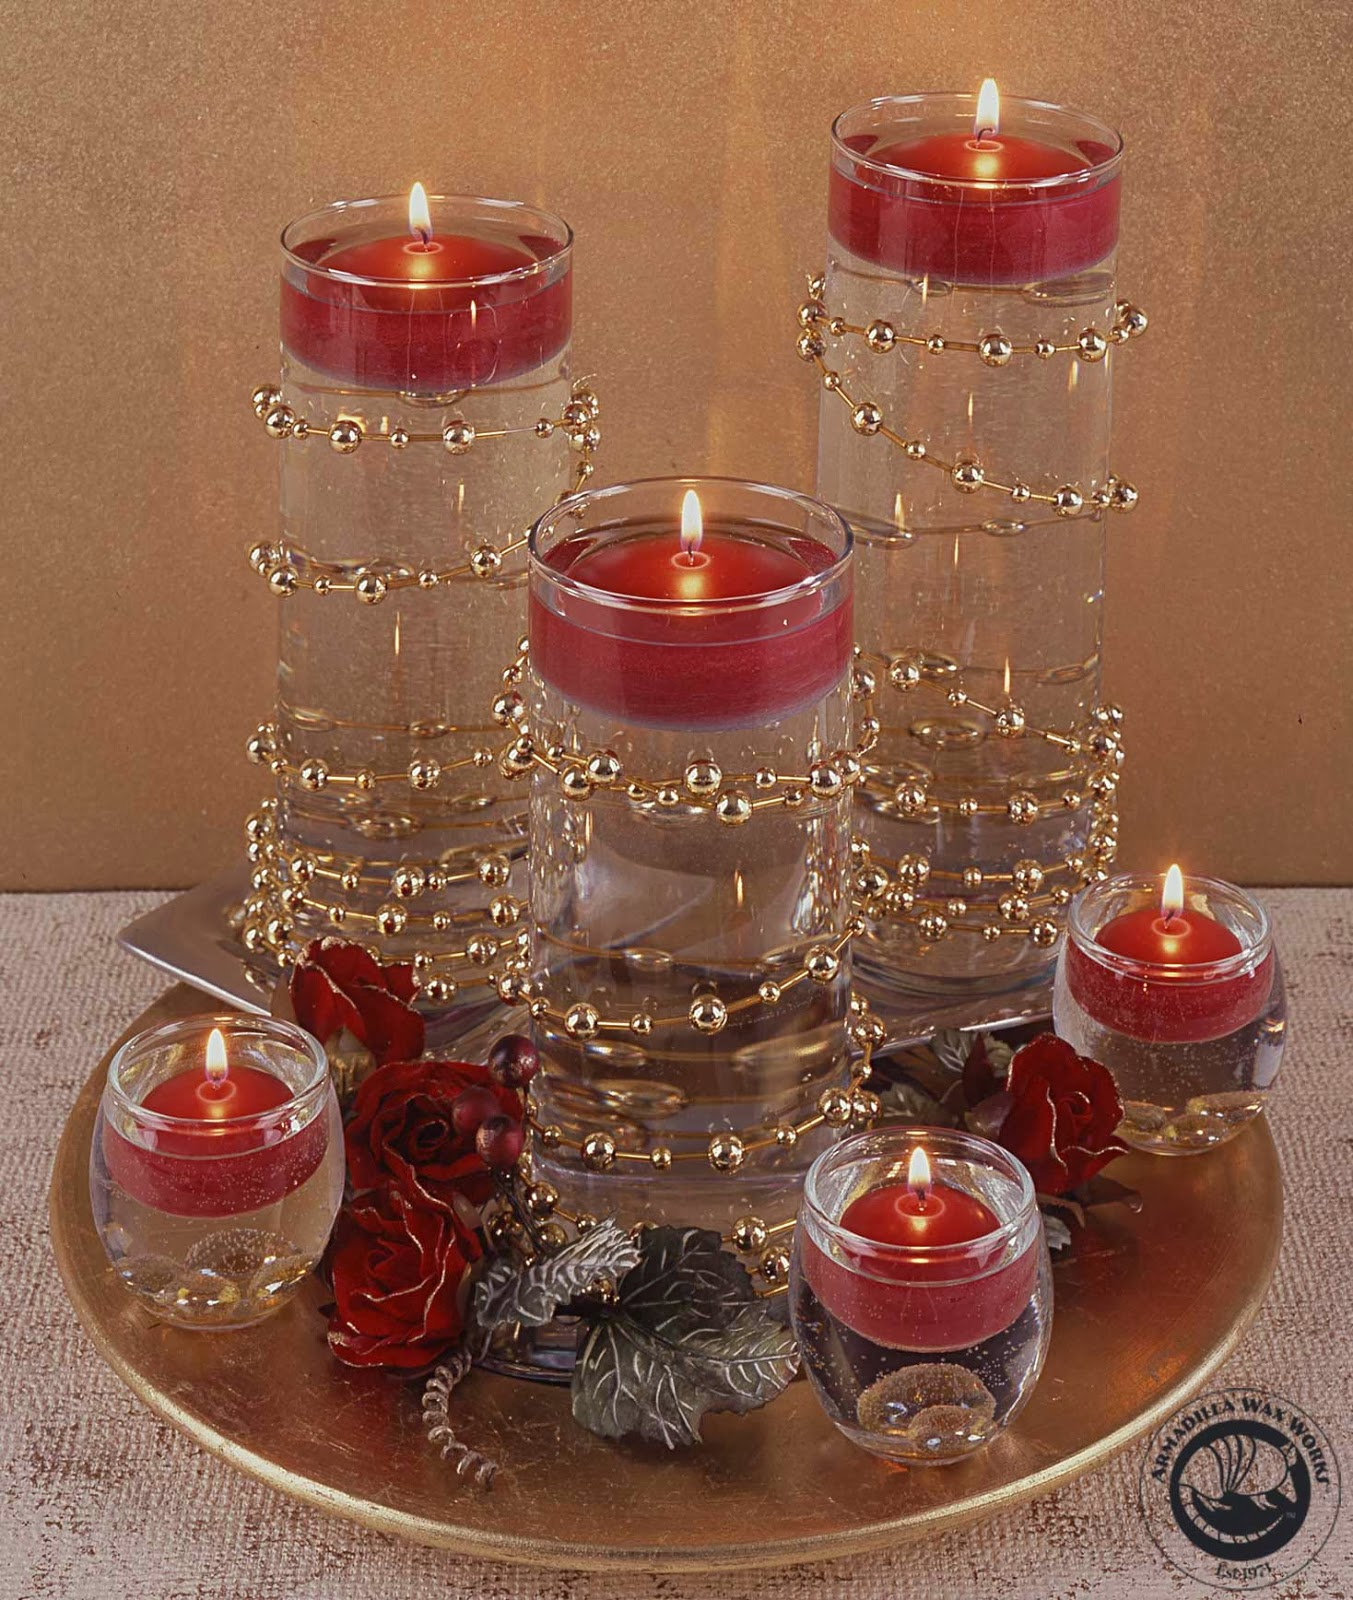 Floating Candle Centerpiece Ideas: The Daily 'Dilla: Dazzling Candle Centerpiece Ideas